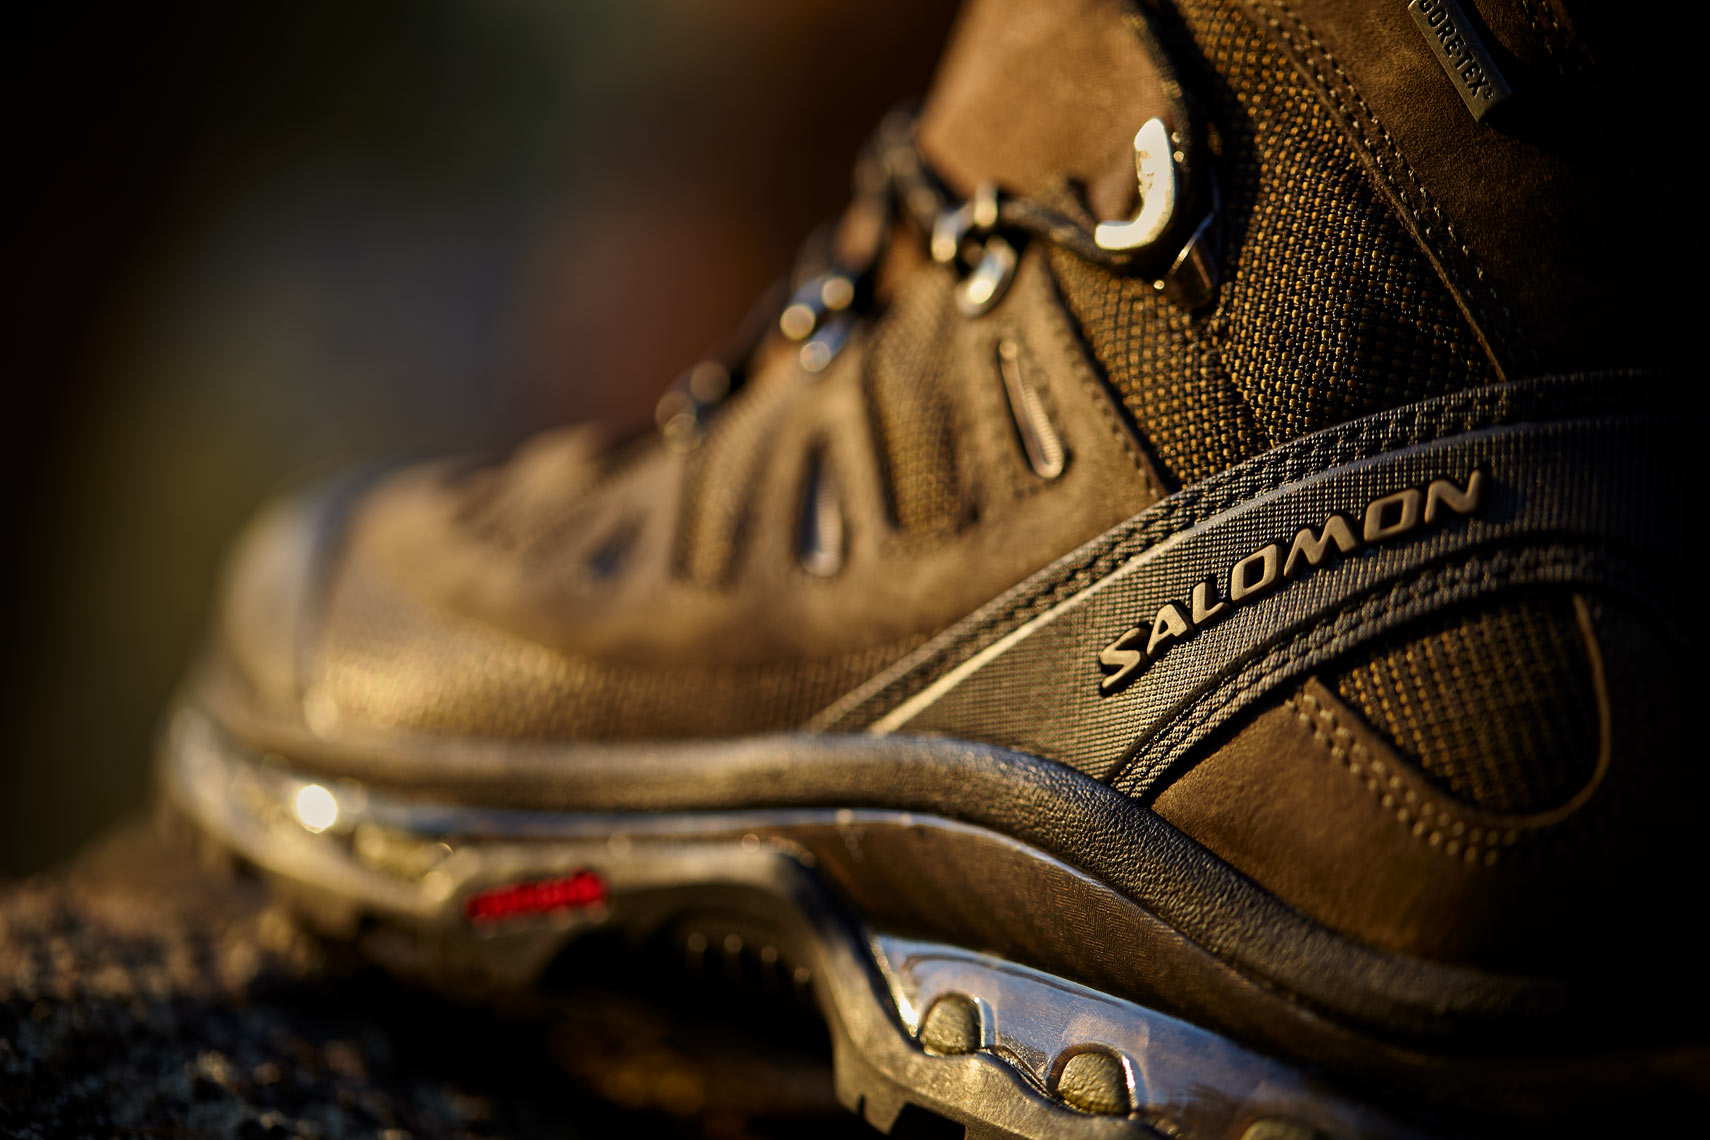 Product Photography Gear Salomon GTX Boot Hiking Backpacking Adventure Outdoor From REI Denver